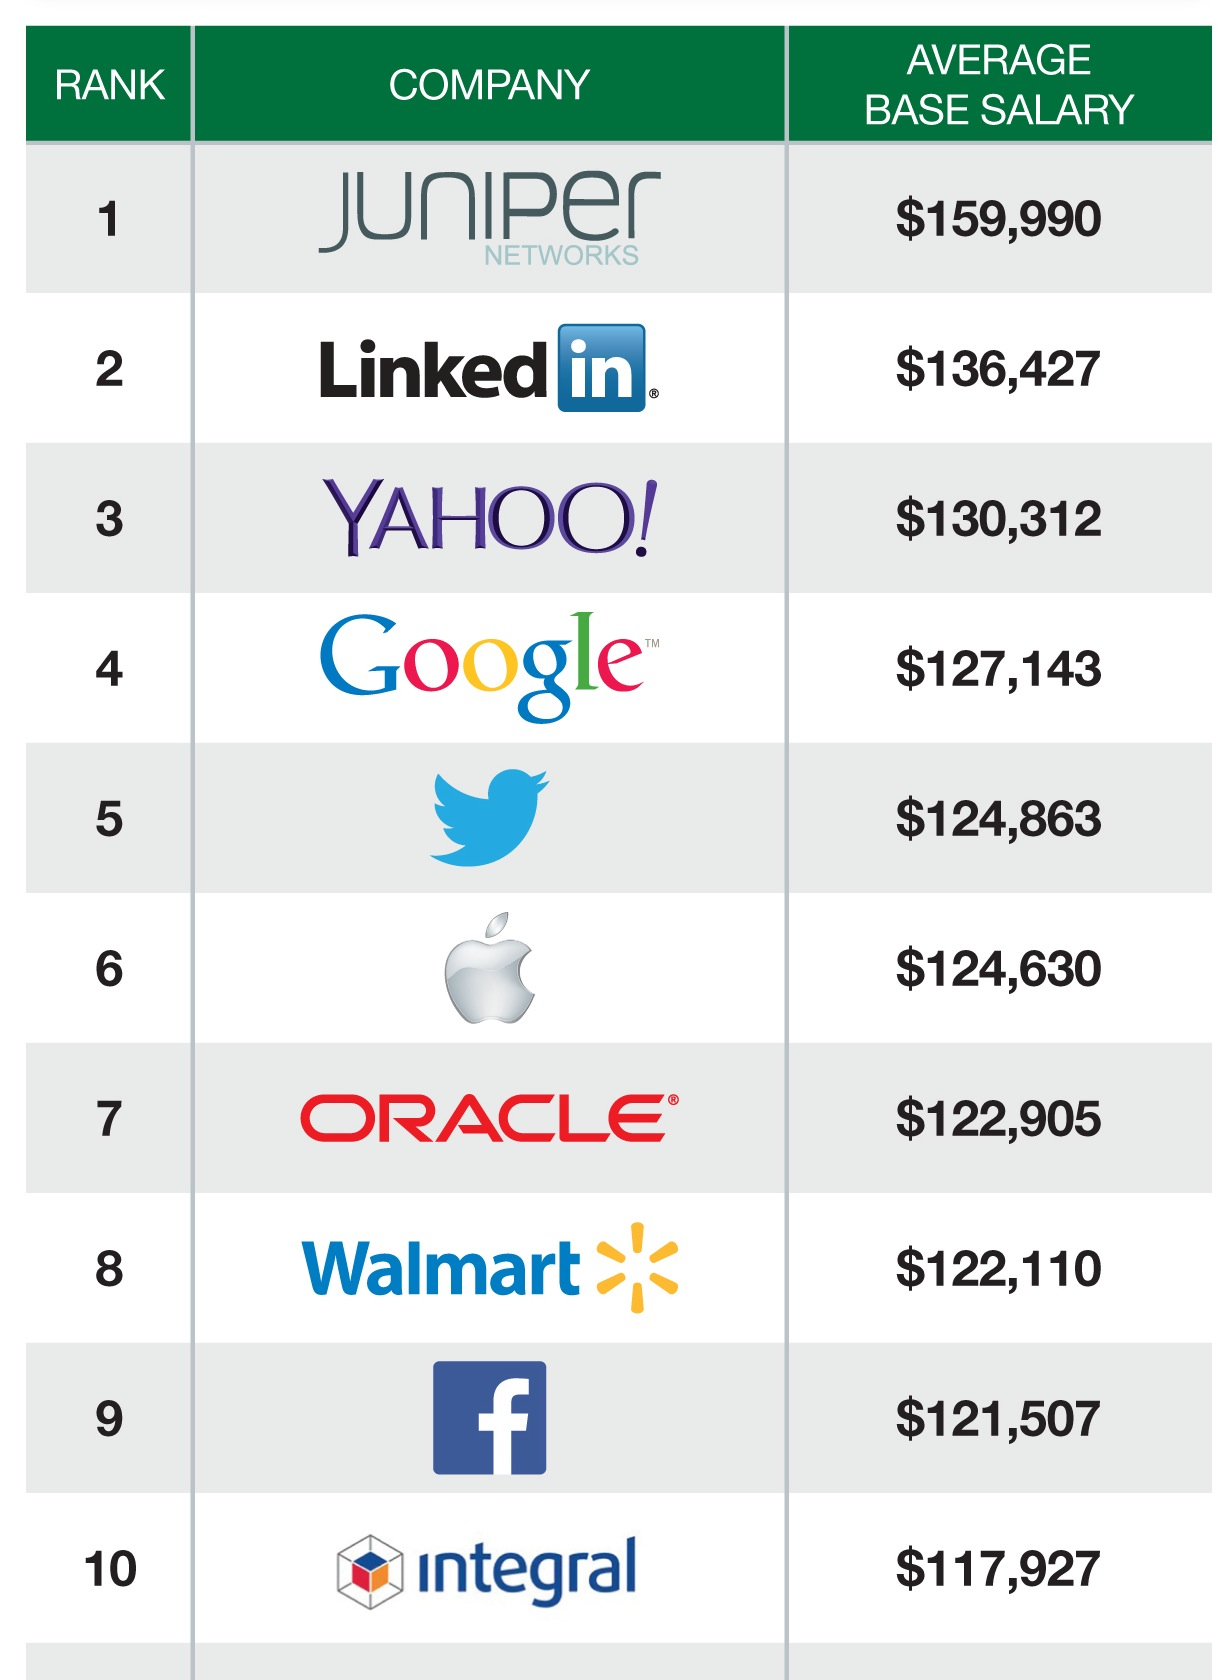 master of computer application salary in usa